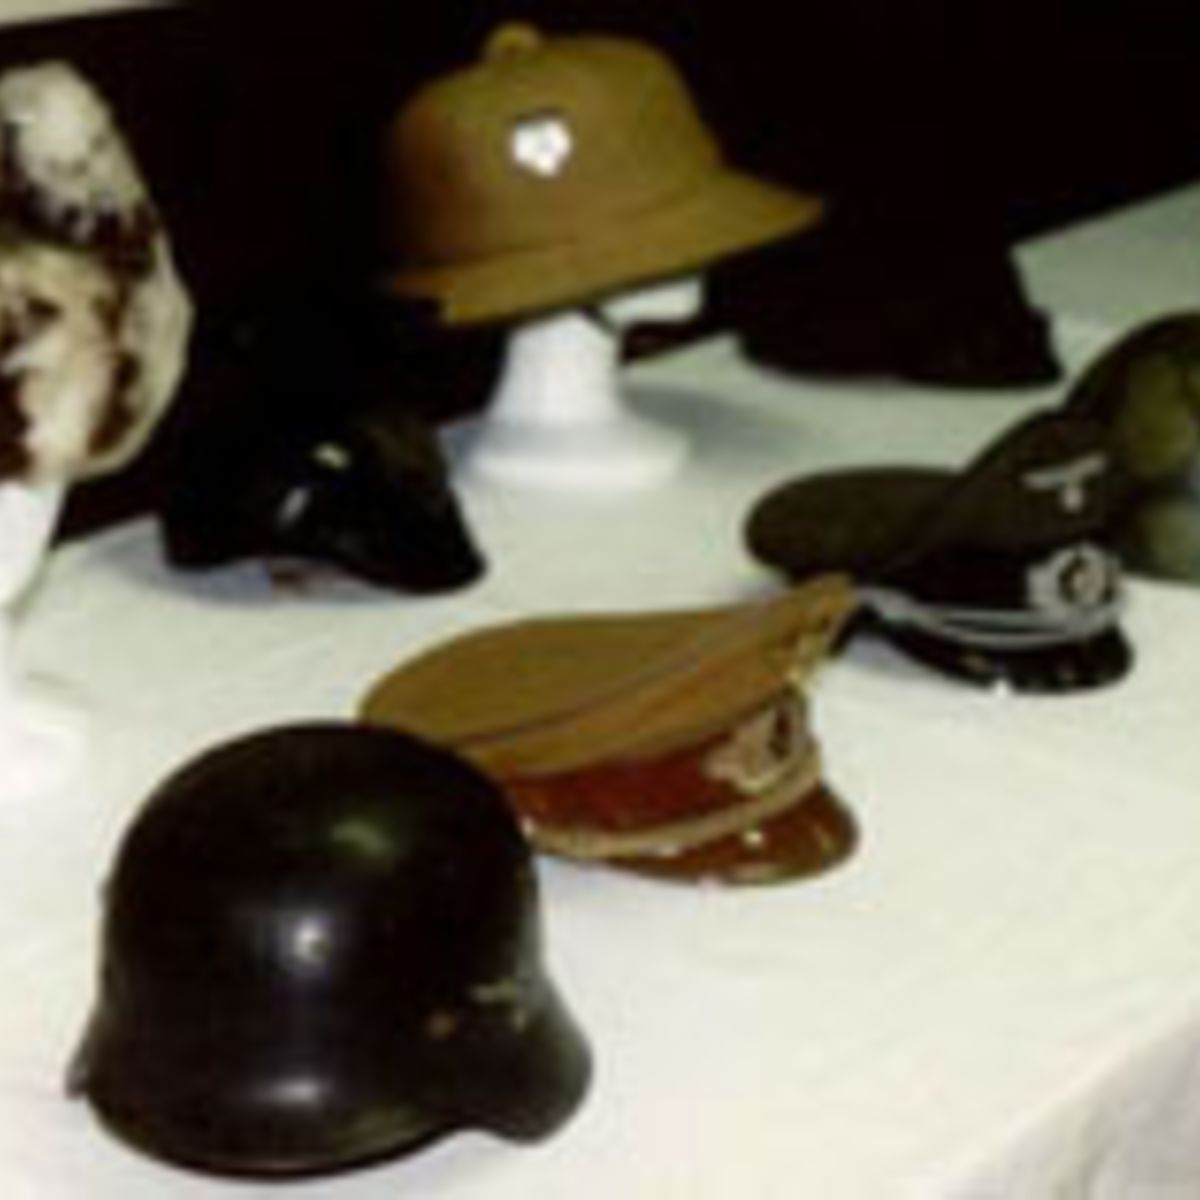 WWII NAZI HELMET AND HEADGEAR COLLECTION.